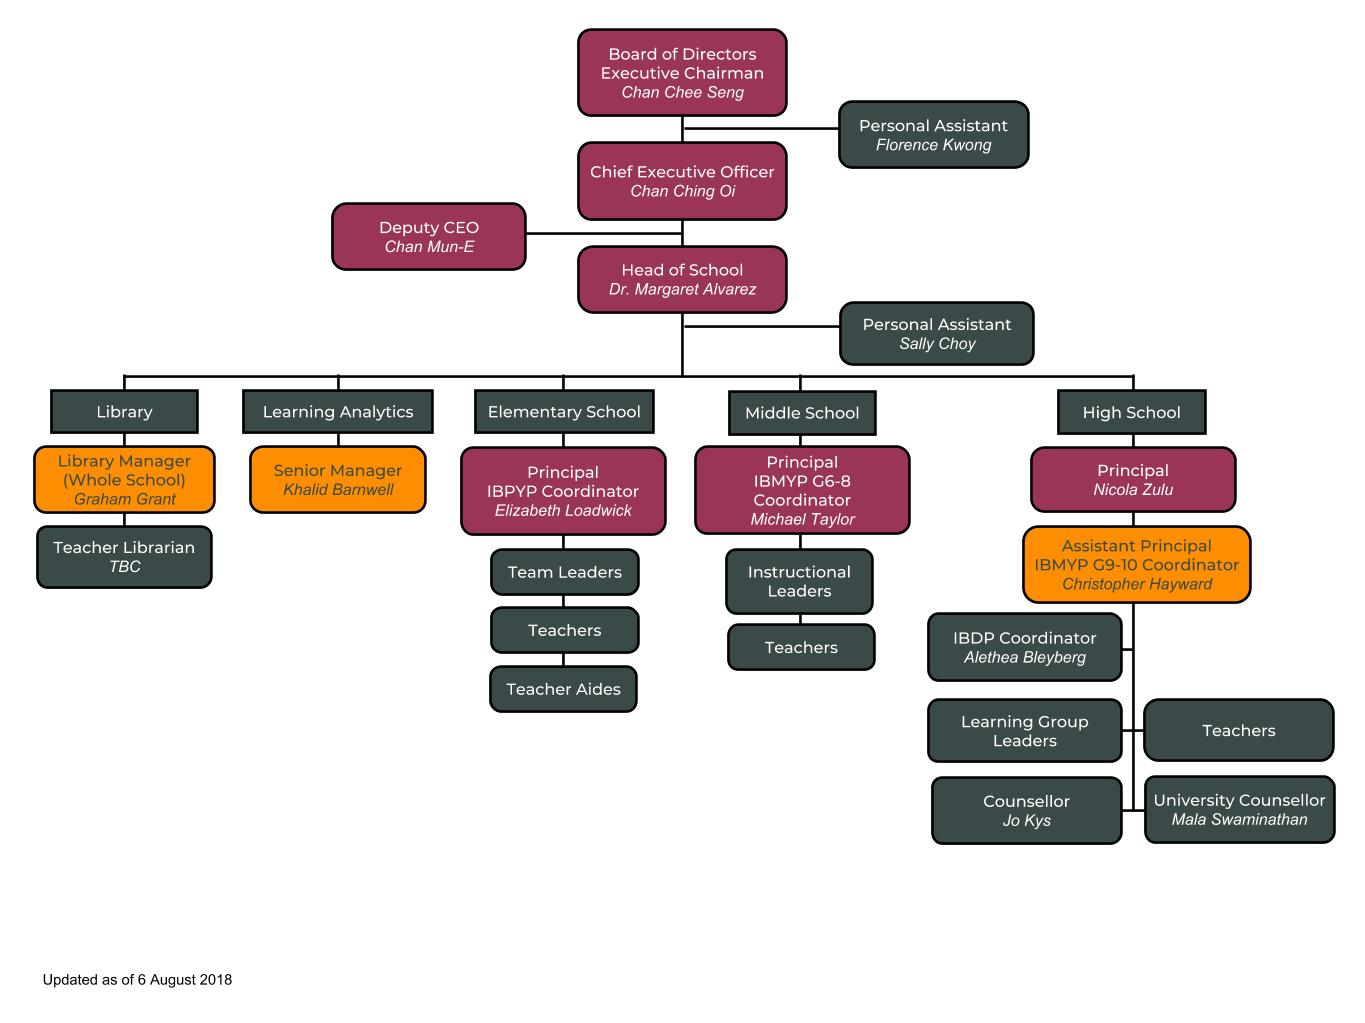 academic-org-chart-updated-080818